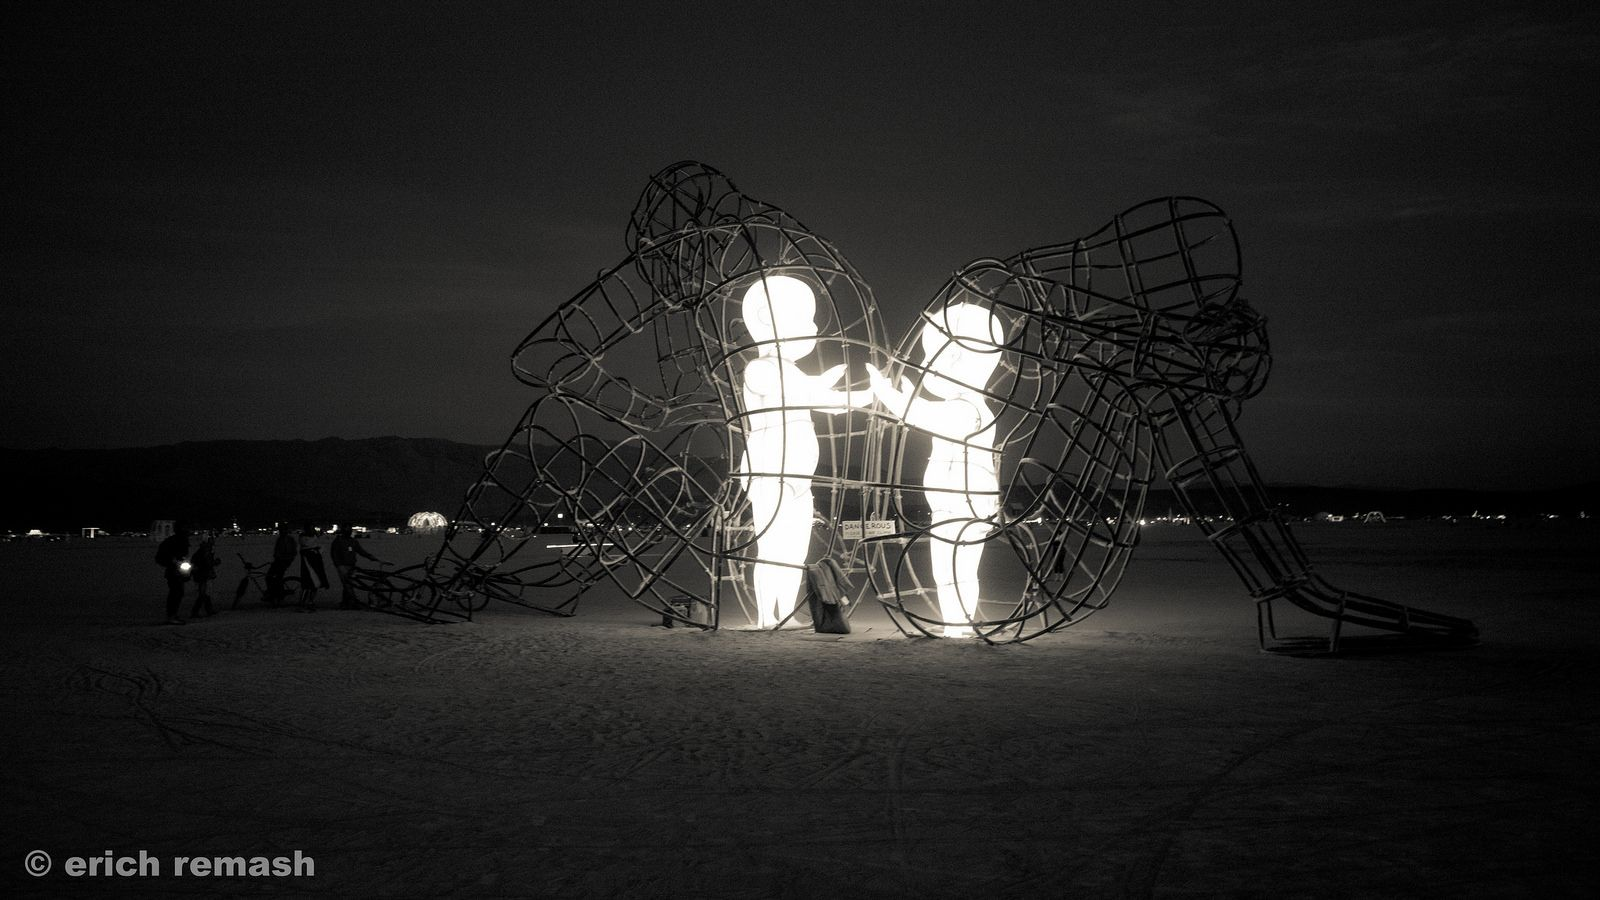 Love Human Nature Burning Man And Symbols - Thought provoking burning man sculpture shows inner children trapped inside adult bodies